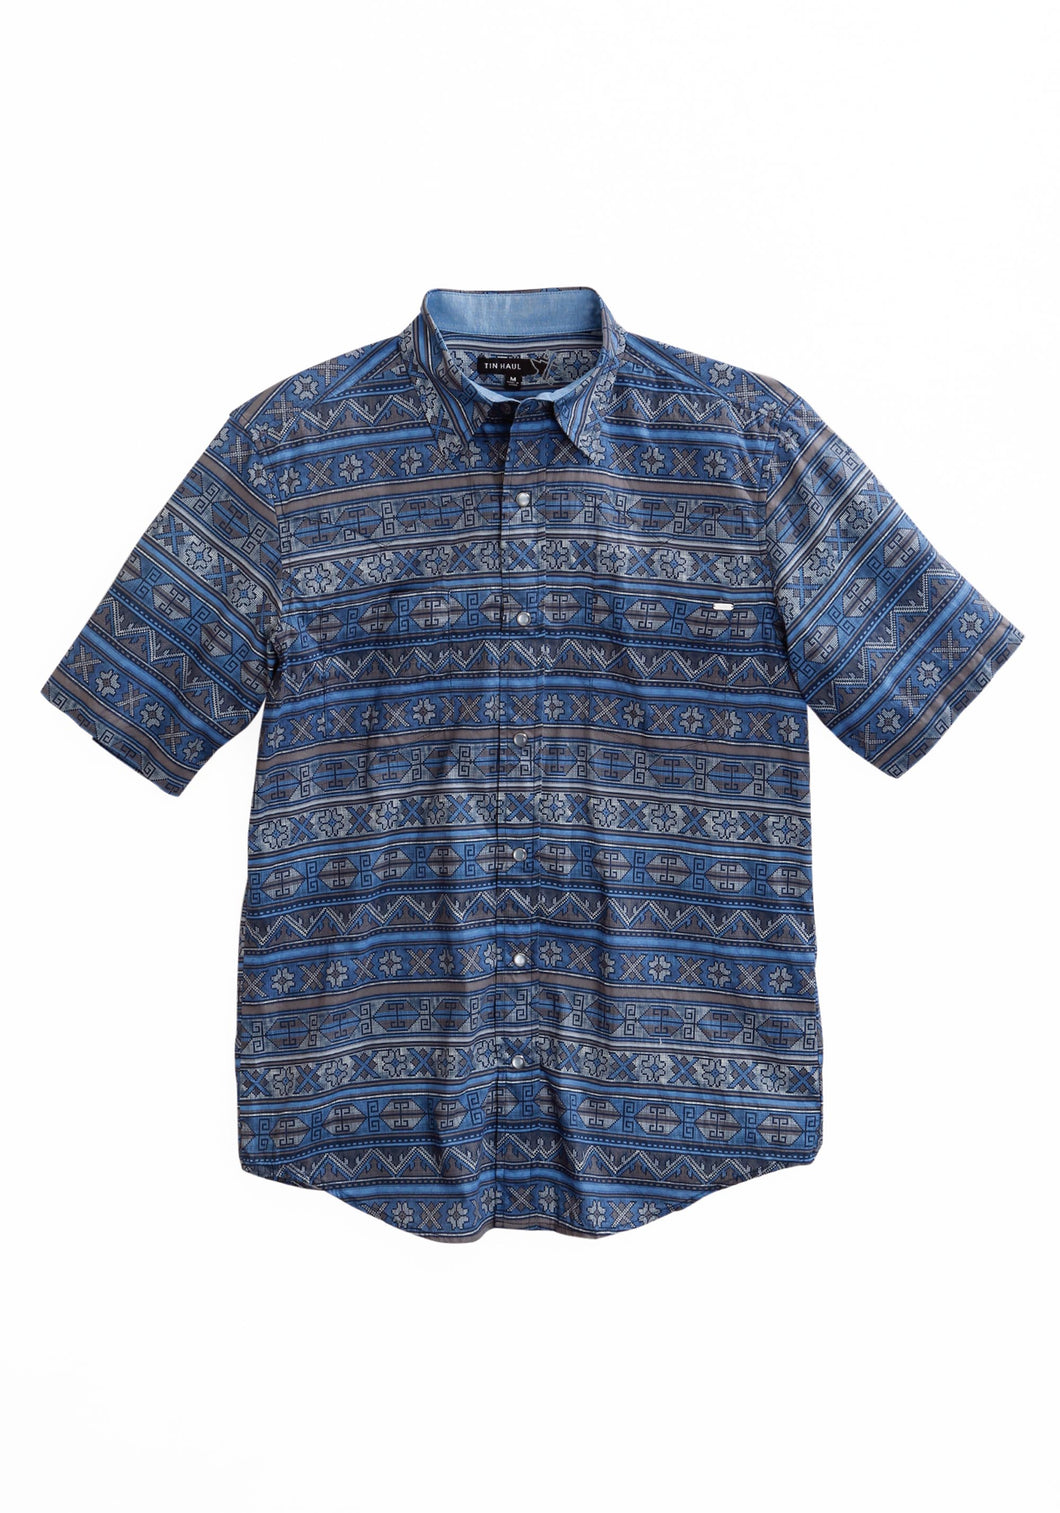 Tin Haul Collection Tinhaul Mens Short Sleeve 1798 Indigo Aztec